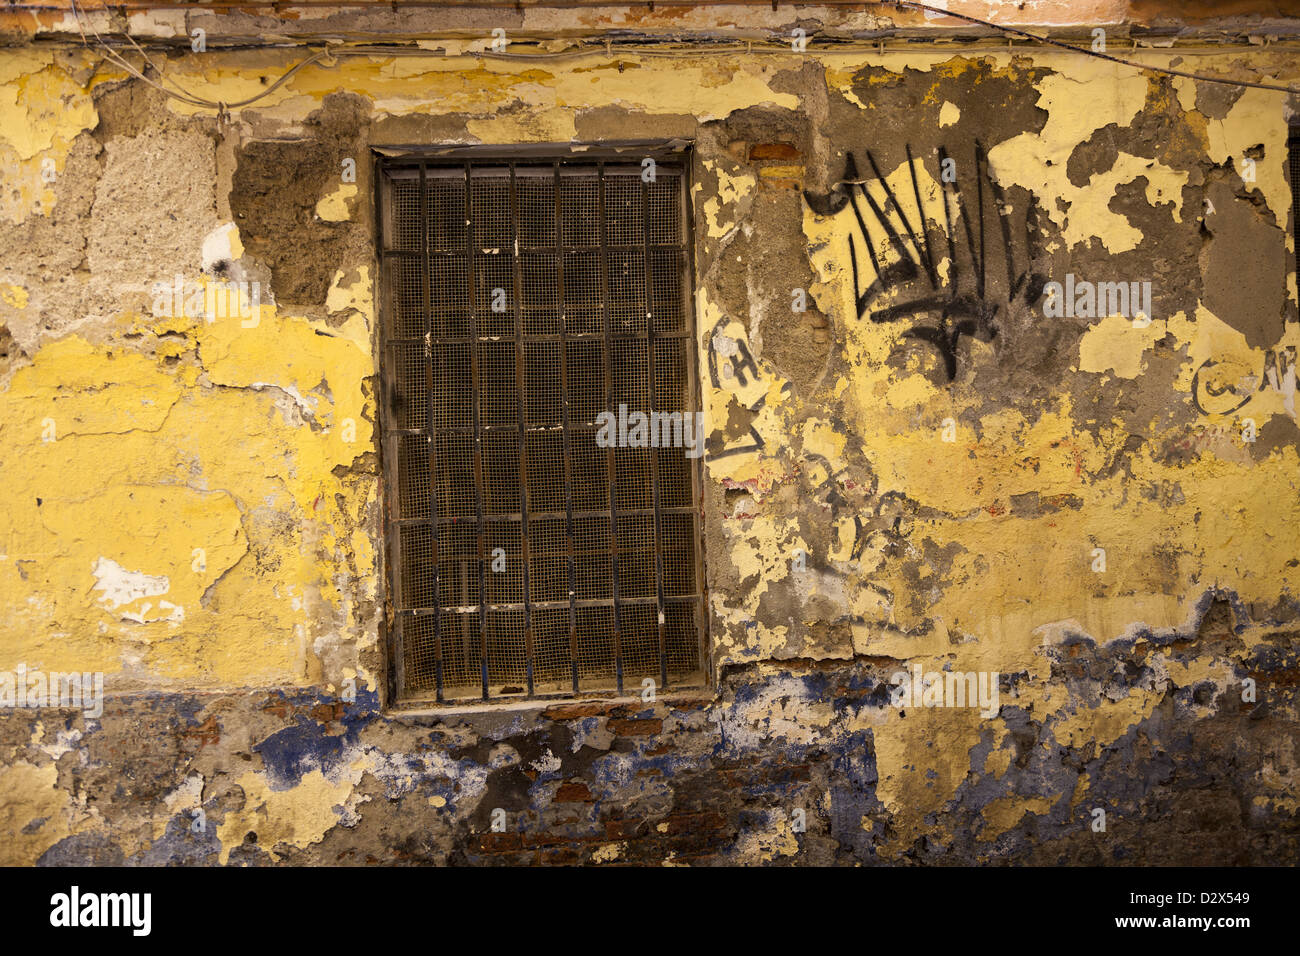 Old peeling wall and window with bars and wire mesh grill